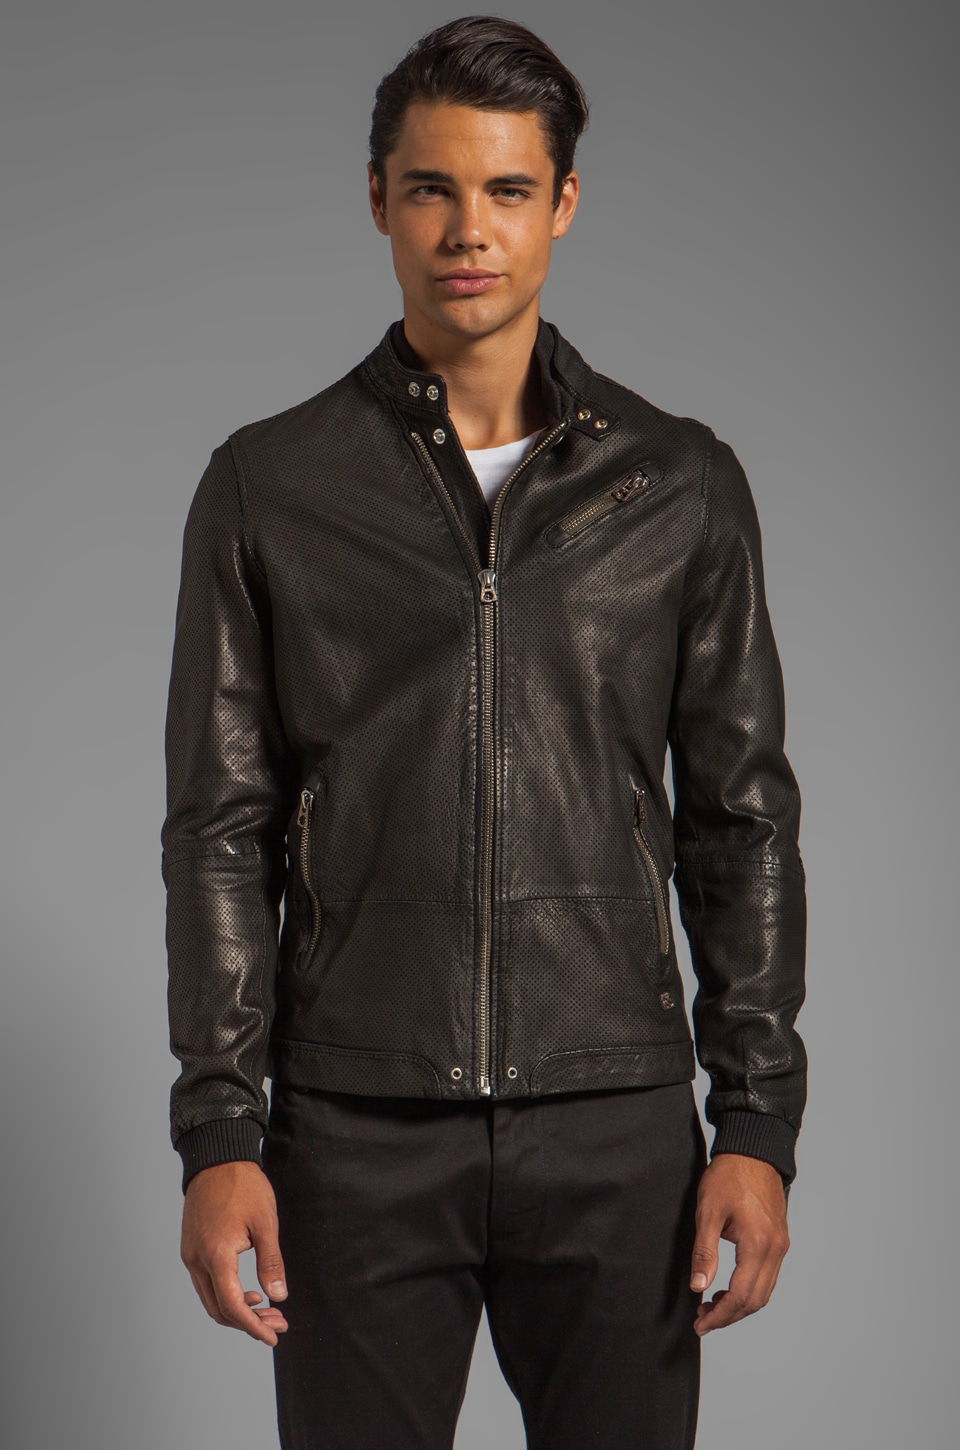 Diesel Lohar Jacket in Black